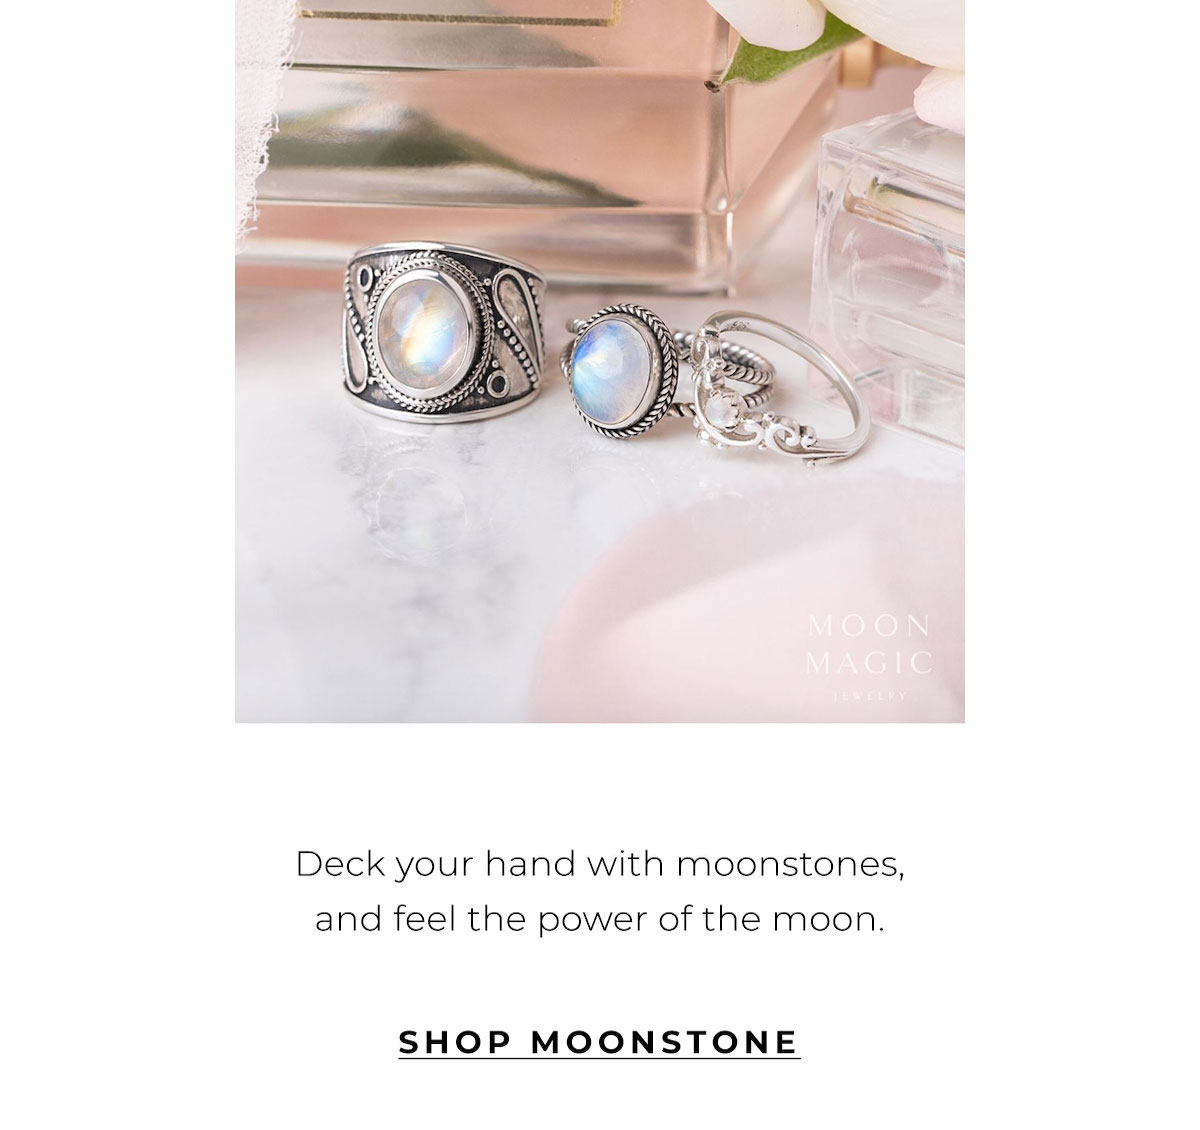 Deck your hand with moonstones and feel the power of the moon. | SHOP MOONSTONE